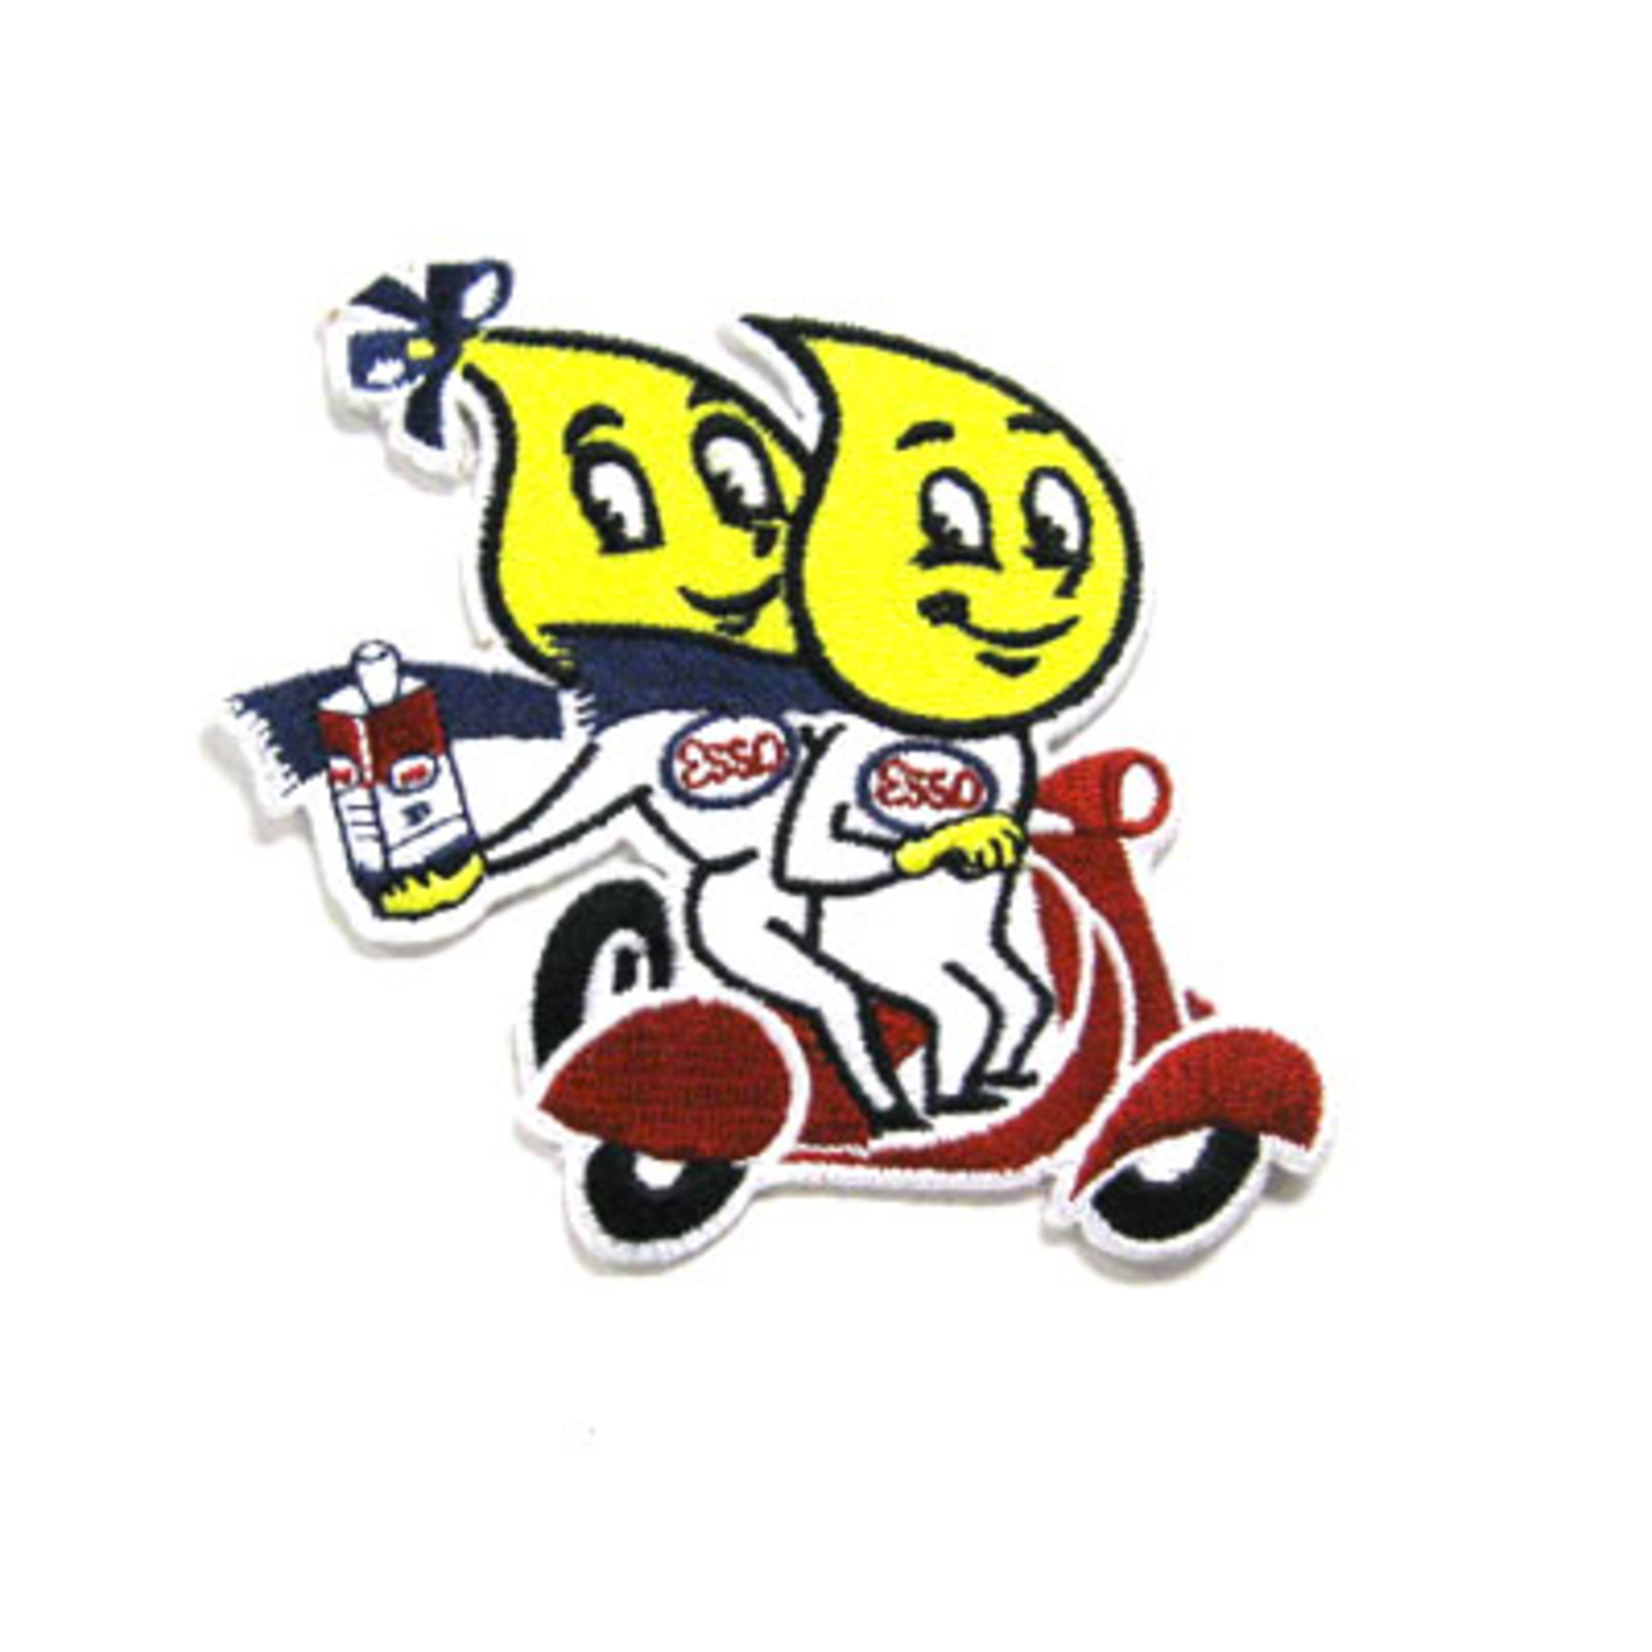 Lifestyle Patch, Esso Scooter